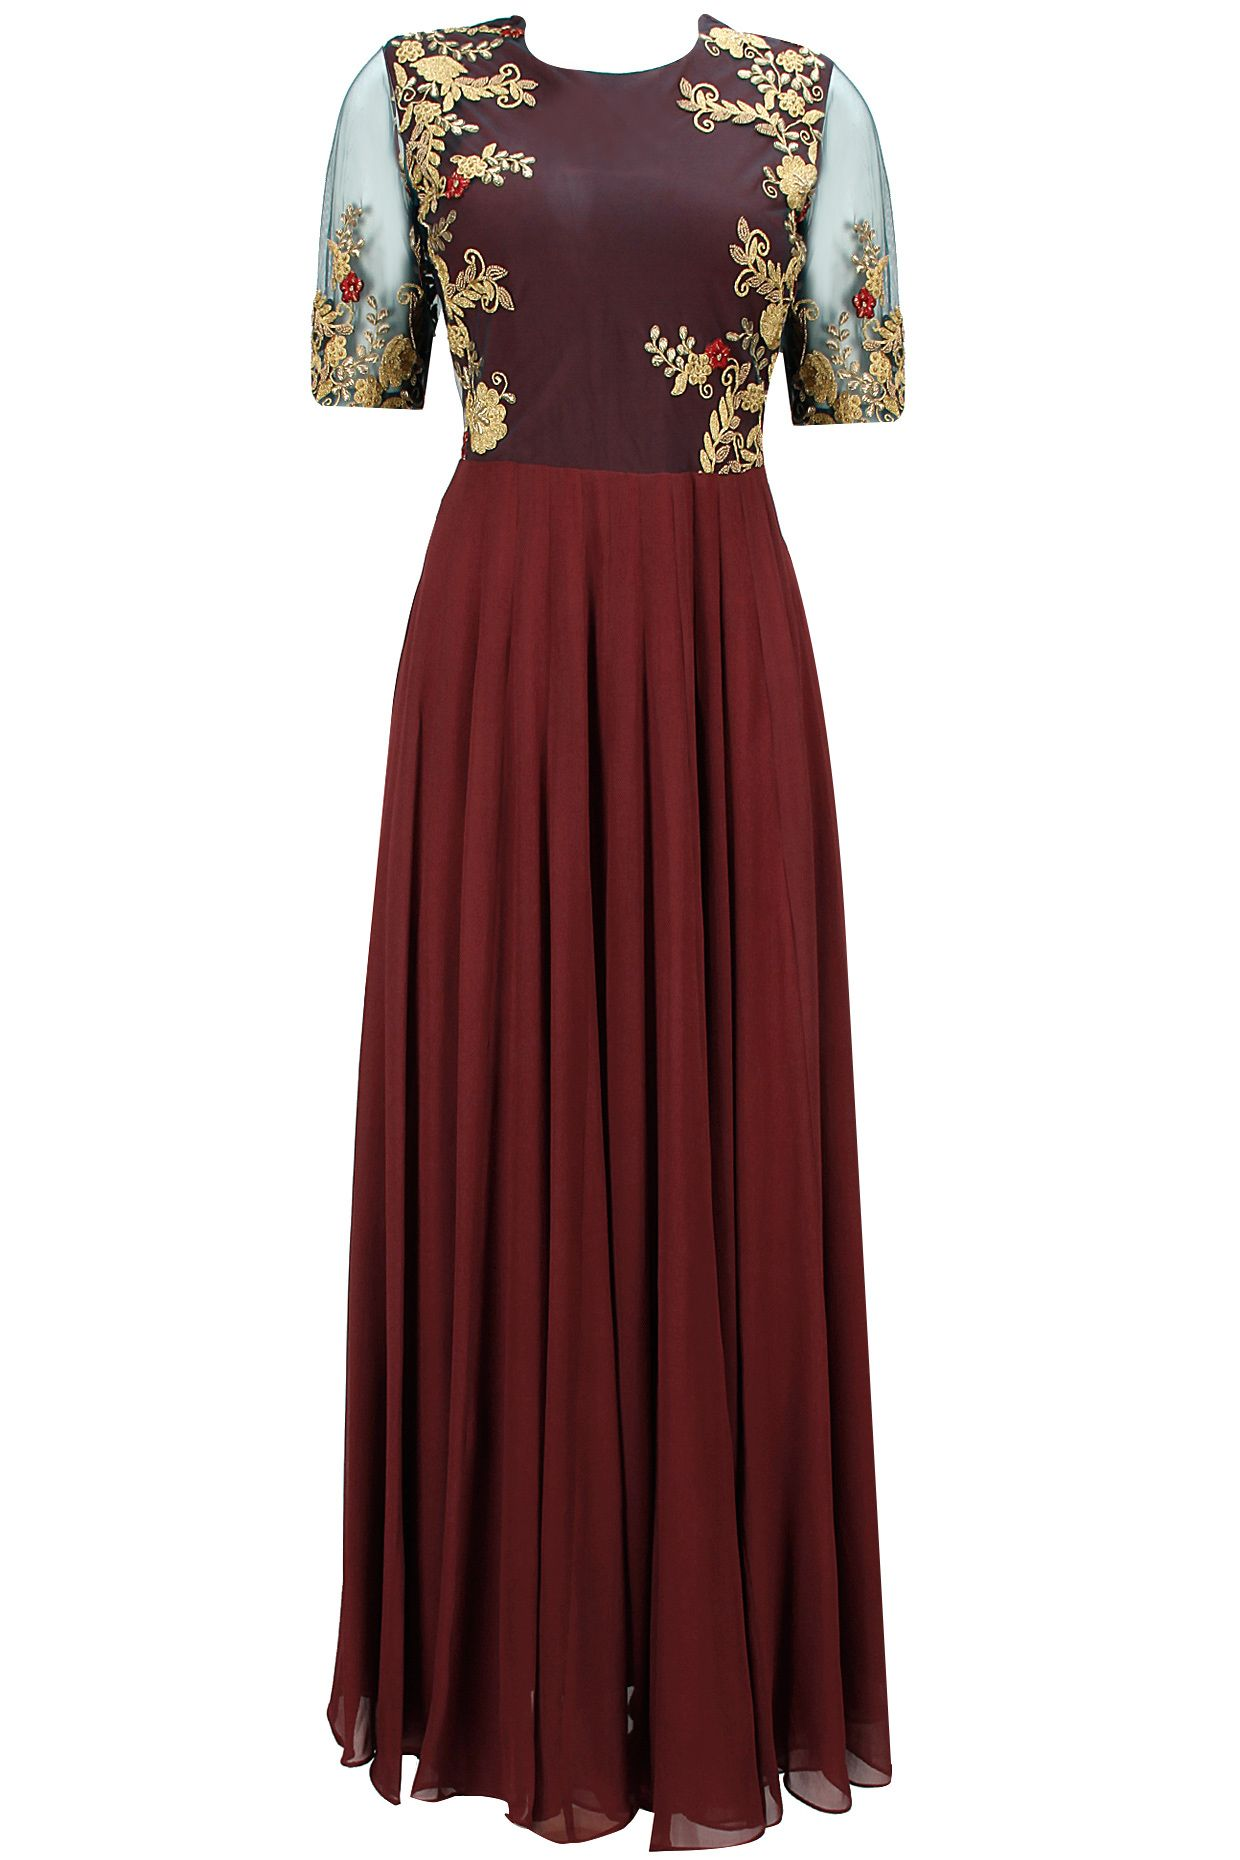 Maroon and teal green embroidered anarkali set available only at Pernia's Pop-Up Shop.